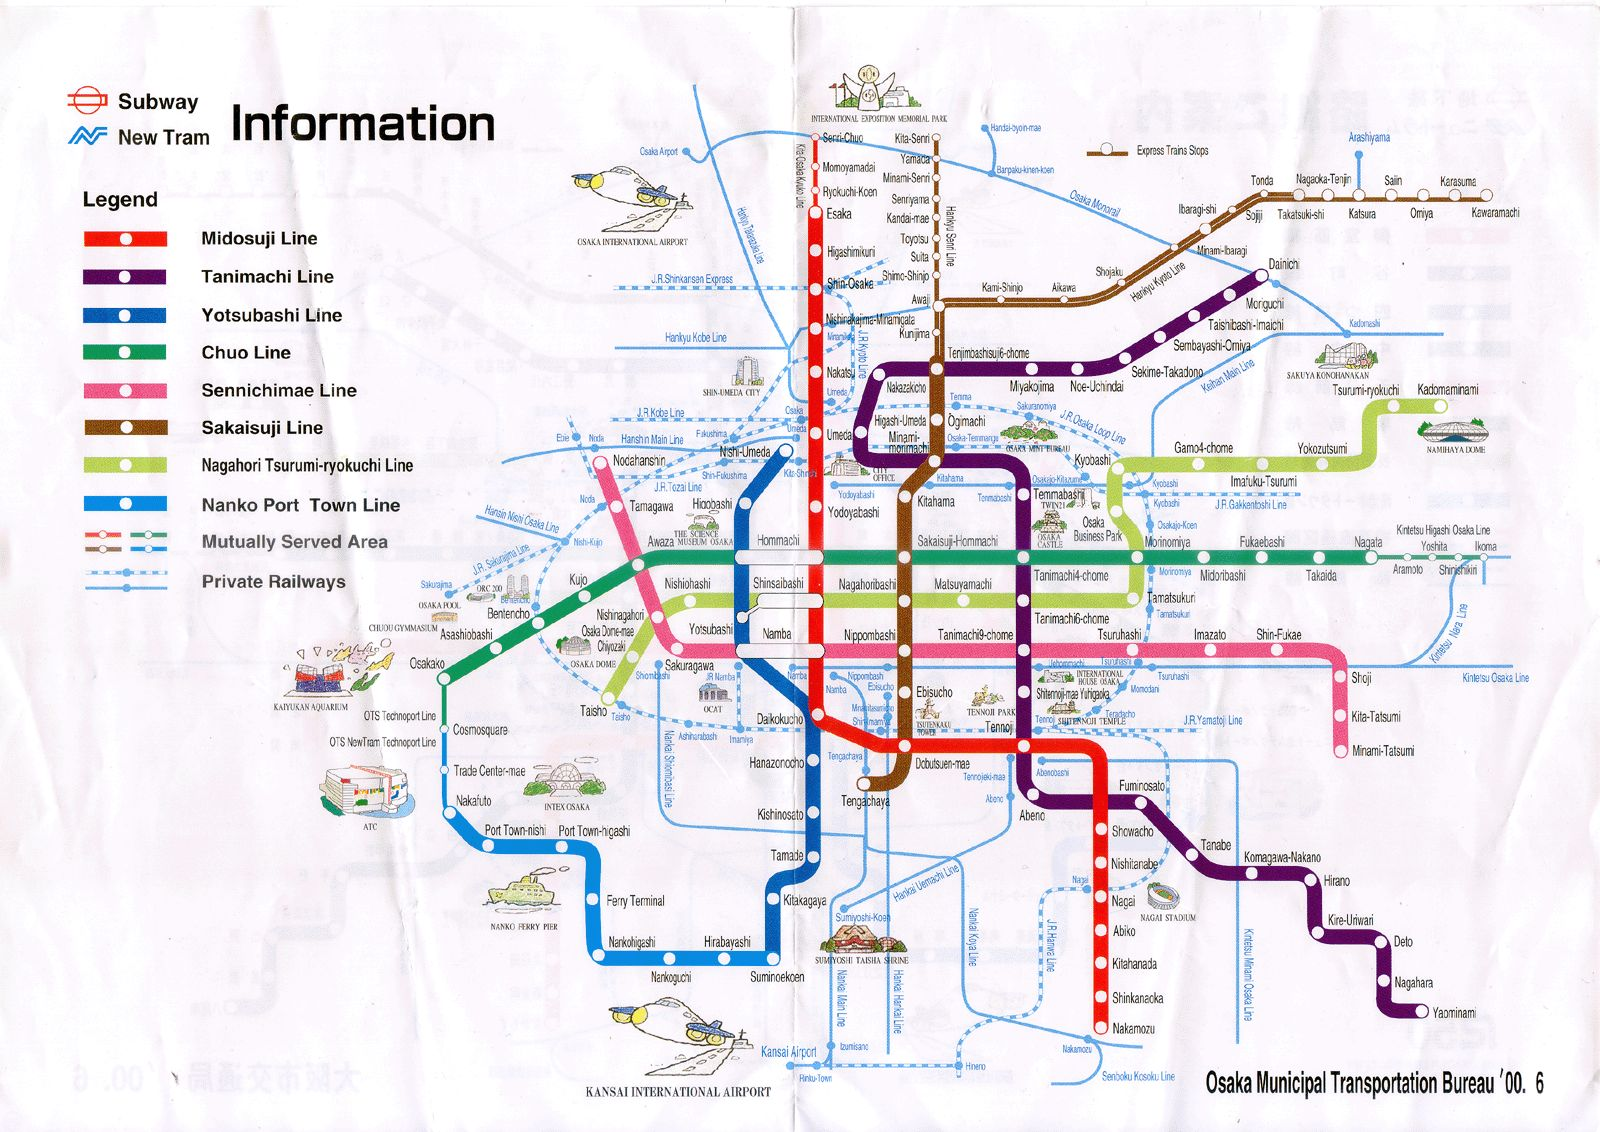 Nankai Line to Kansei is 7 minutes on foot from Namba | Travels ... TIRANA SUBWAY MAP